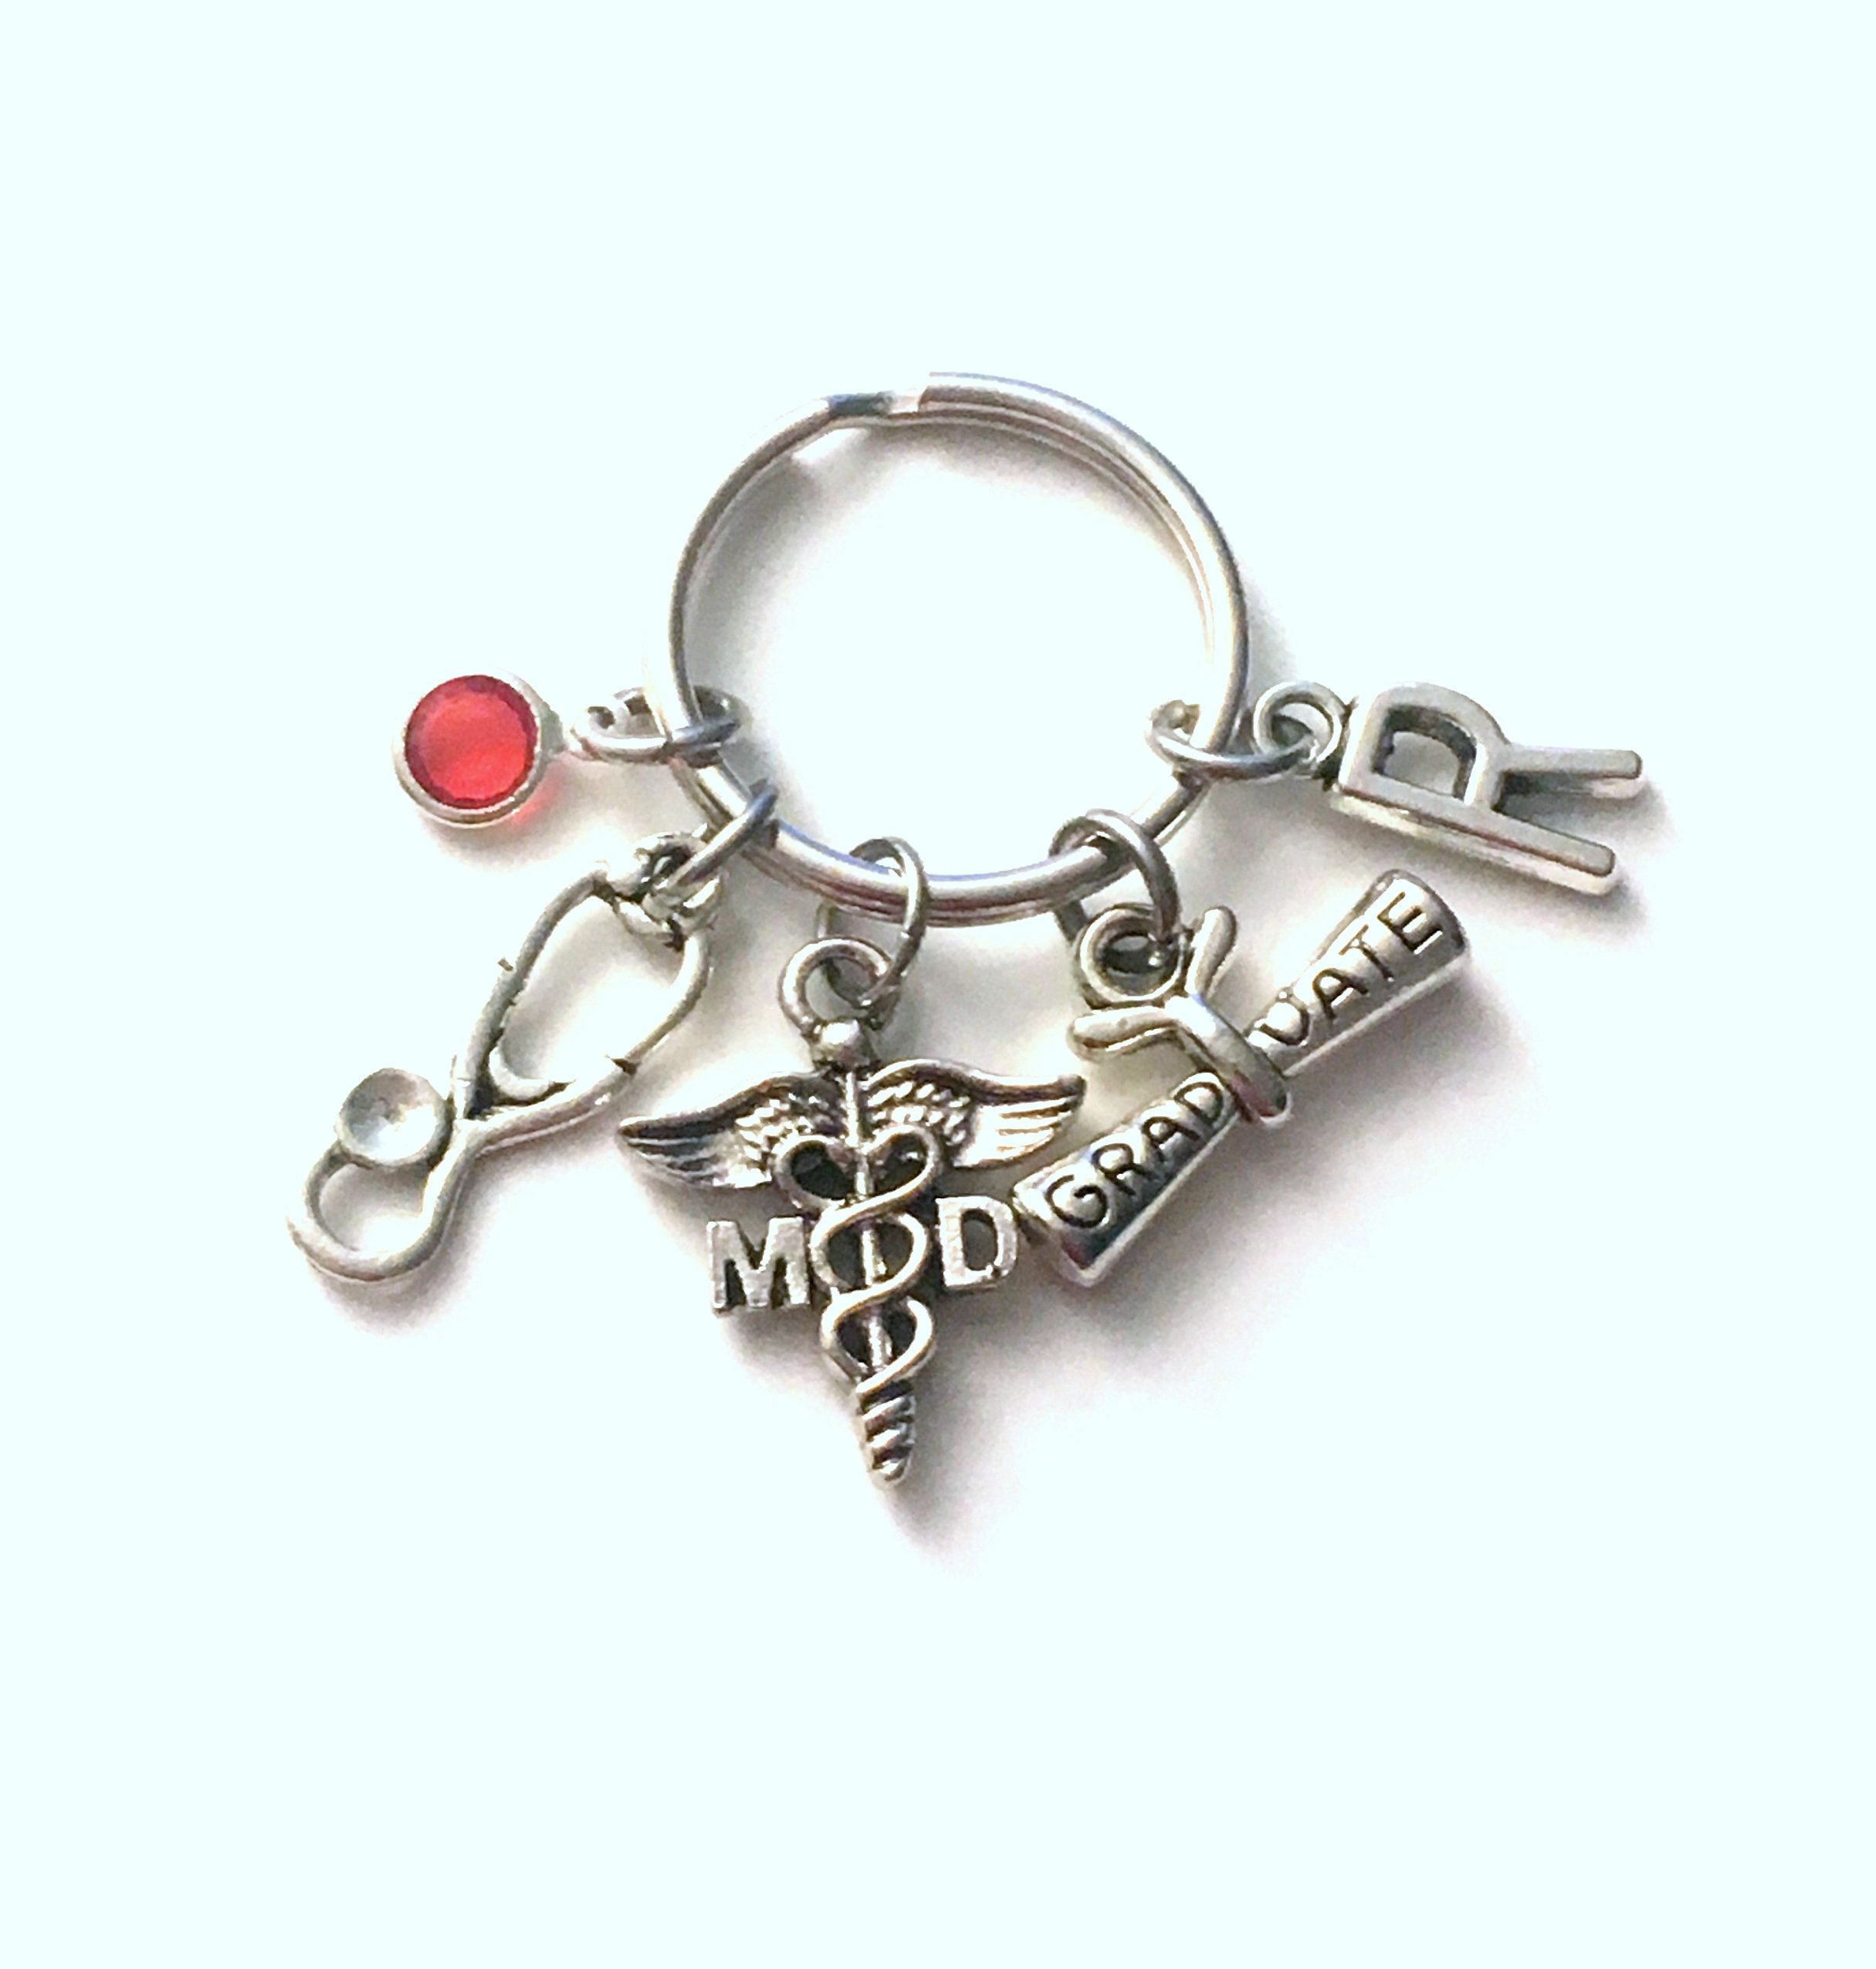 Graduation gift for md keychain medical doctor key chain